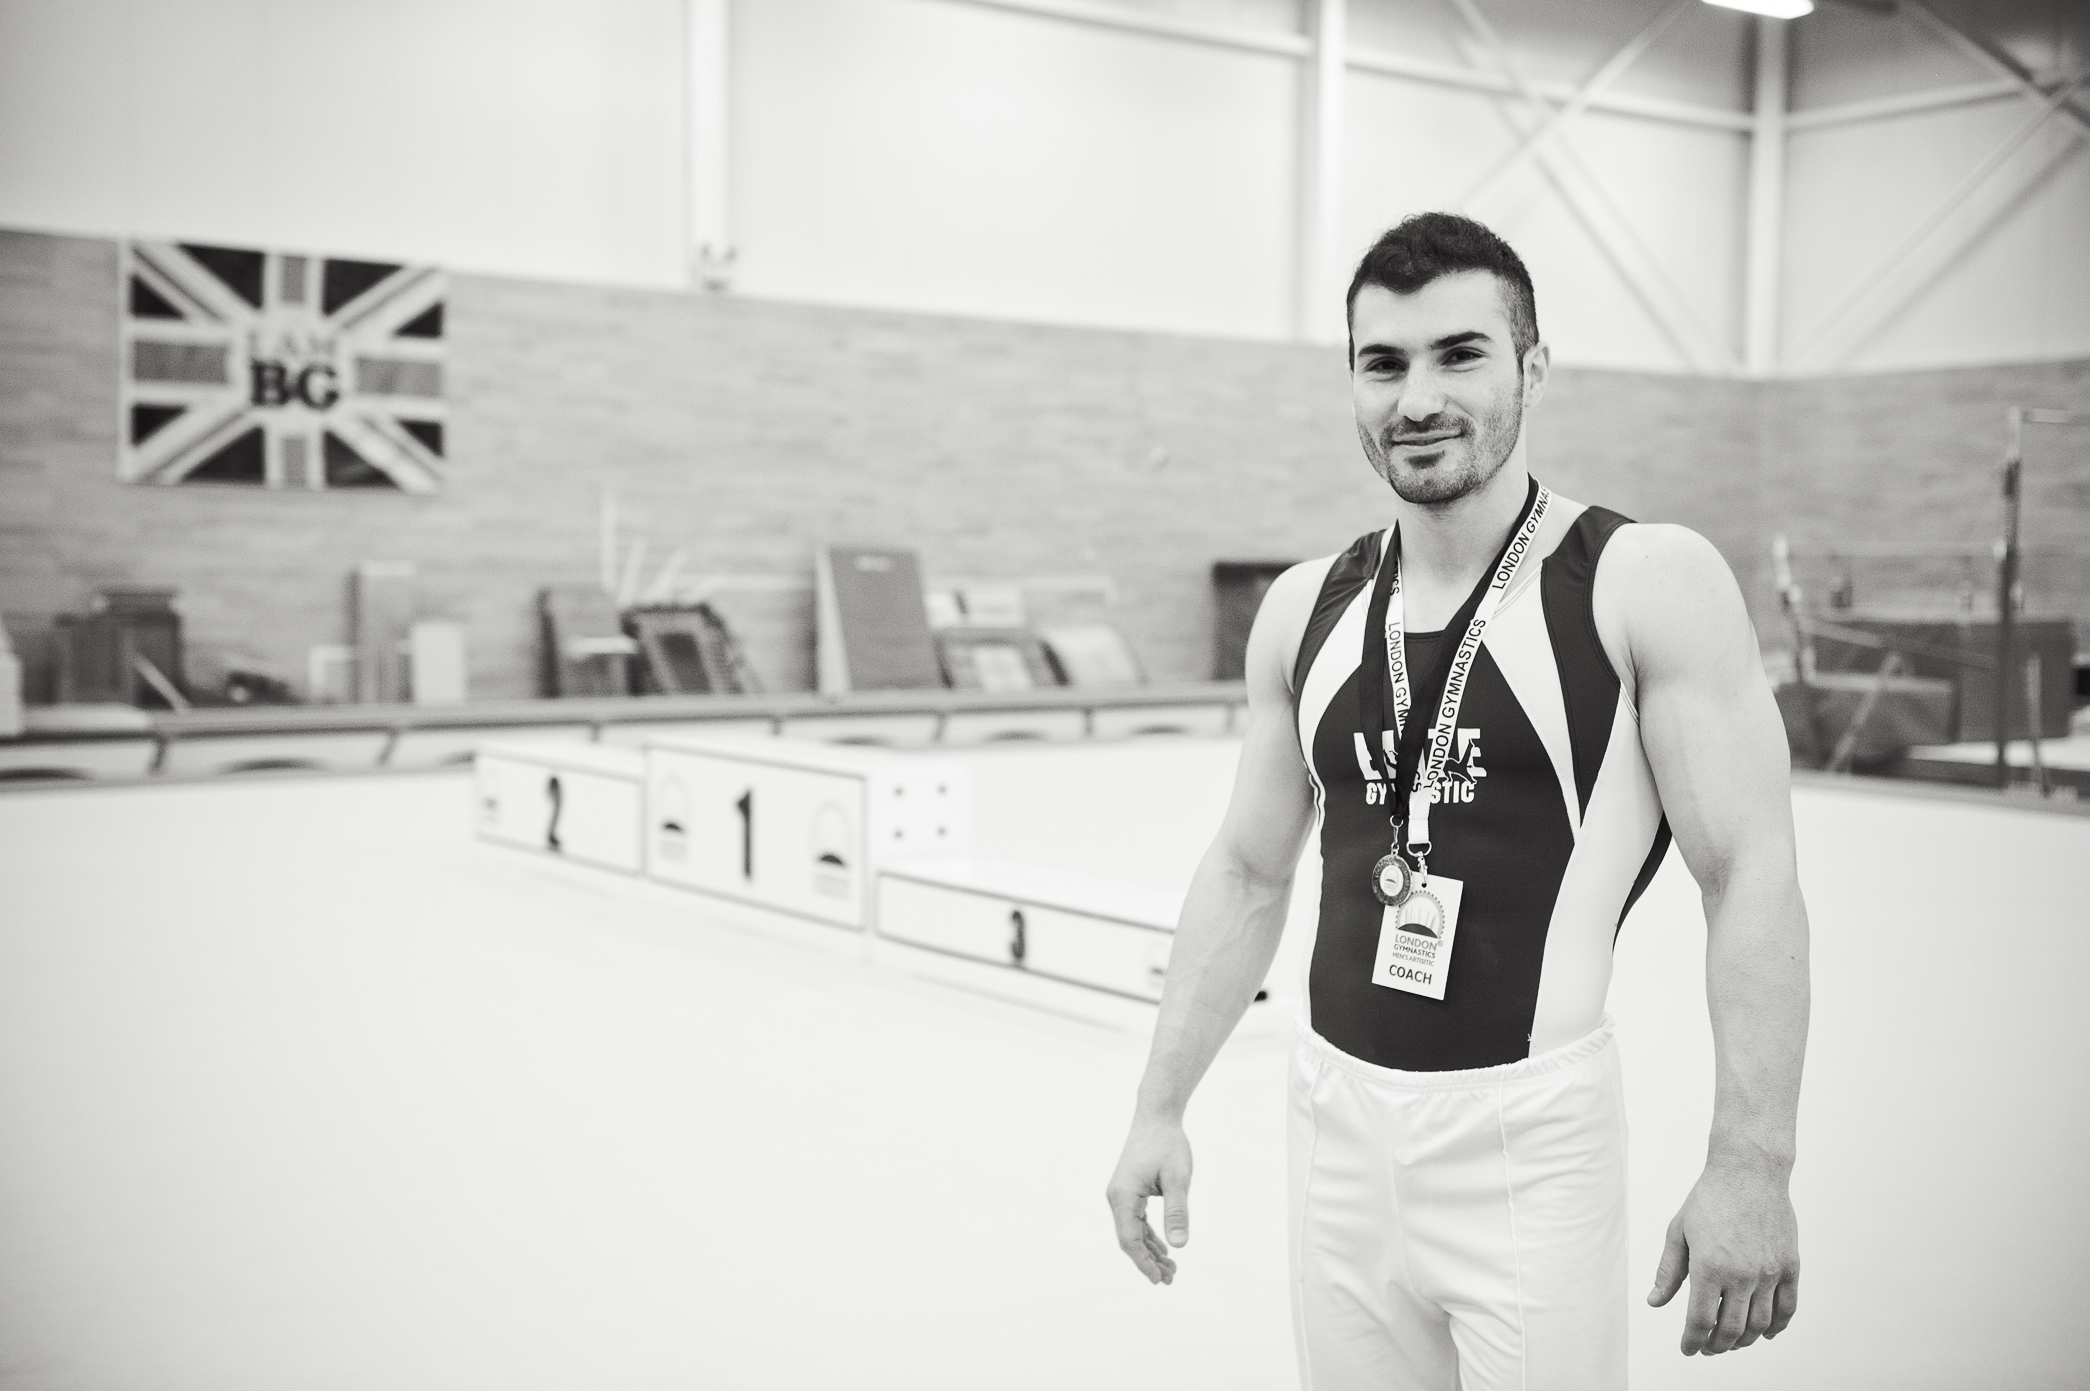 I am Stefan Kolimechkov, Two-Time London Rings Champion